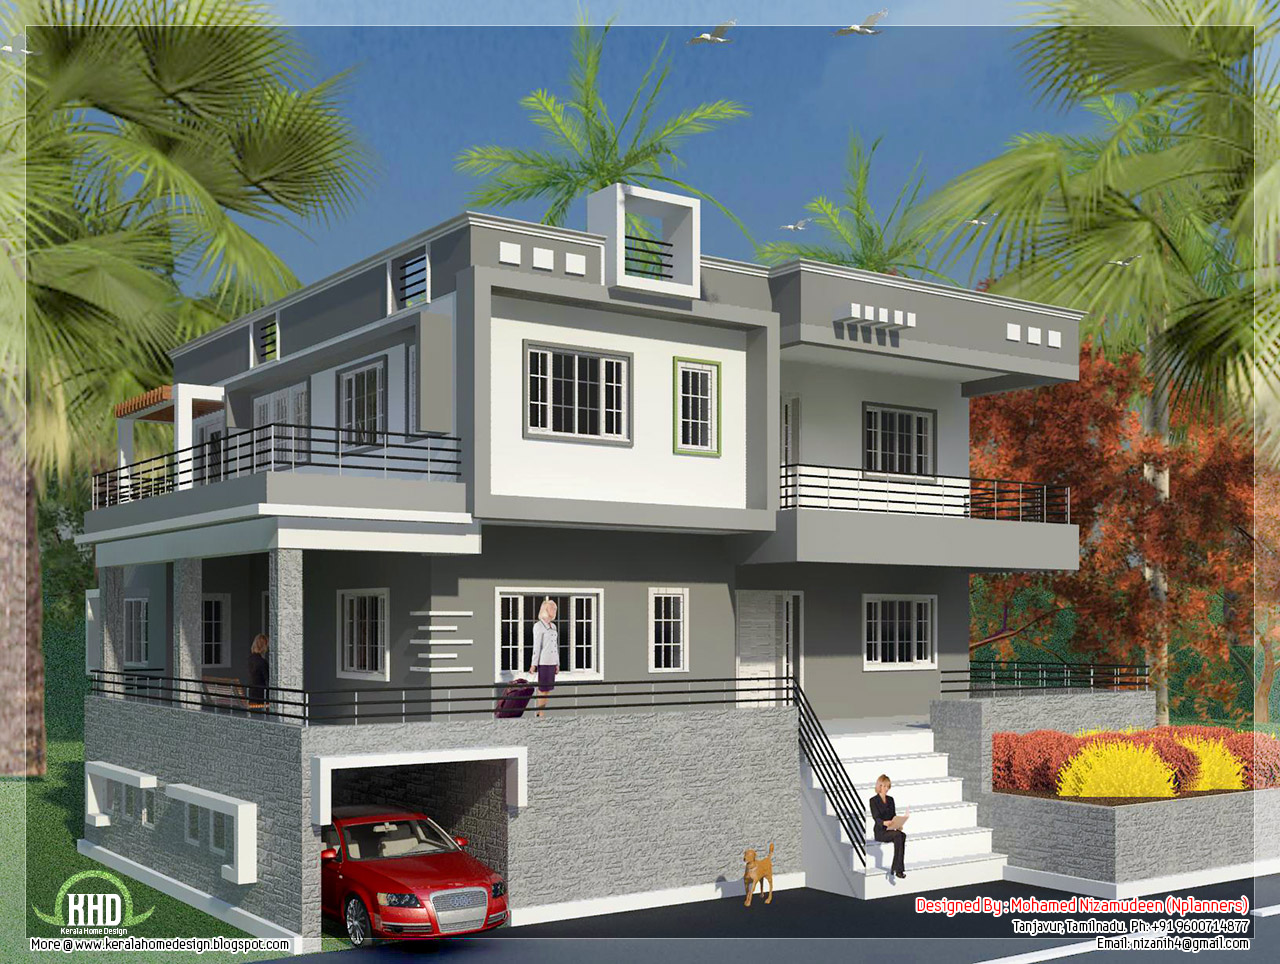 North indian style minimalist house exterior design for Home front design in indian style